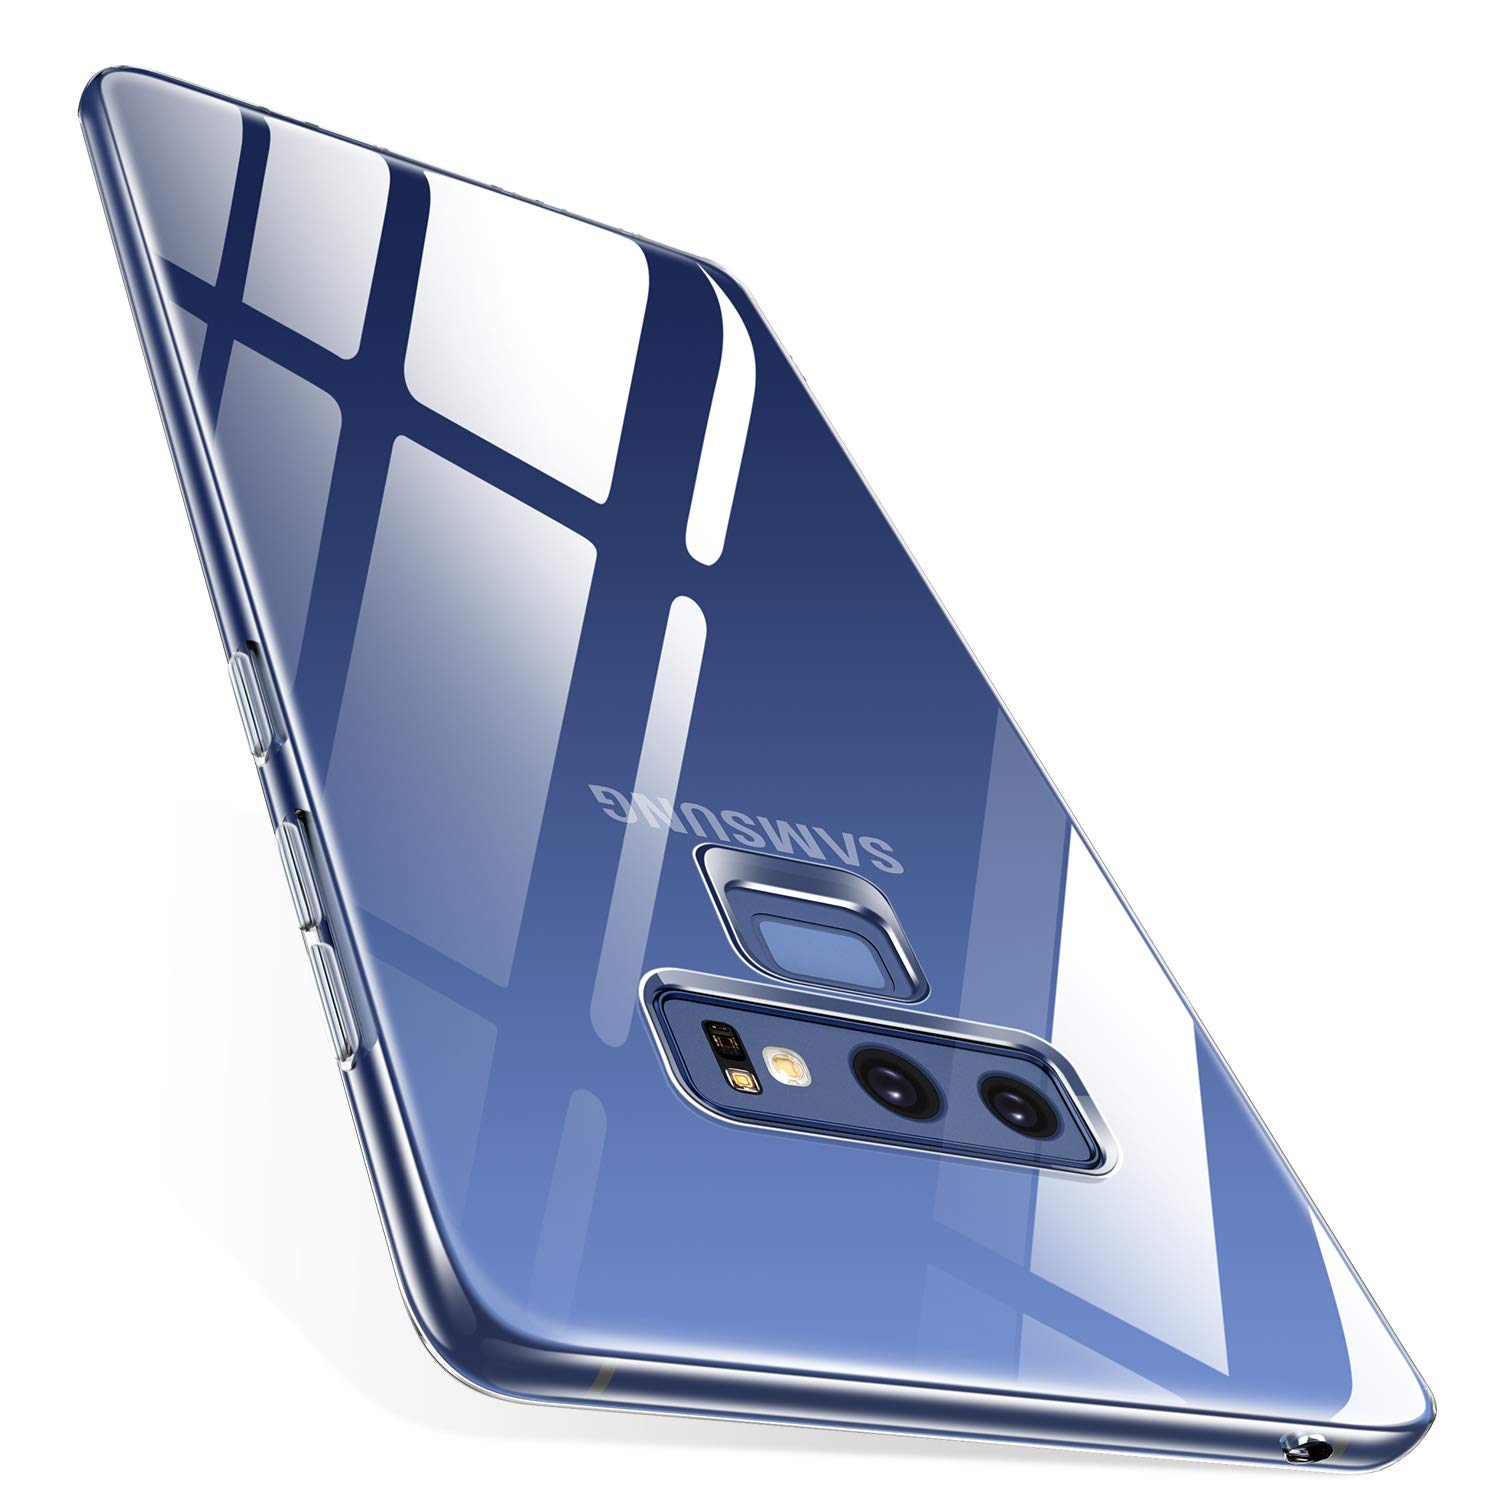 TORRAS Case for Galaxy Note 9, Crystal Clear Ultra Thin Slim Fit Soft TPU  Gel Case Cover with Transparent Frame Compatible with Samsung Galaxy Note